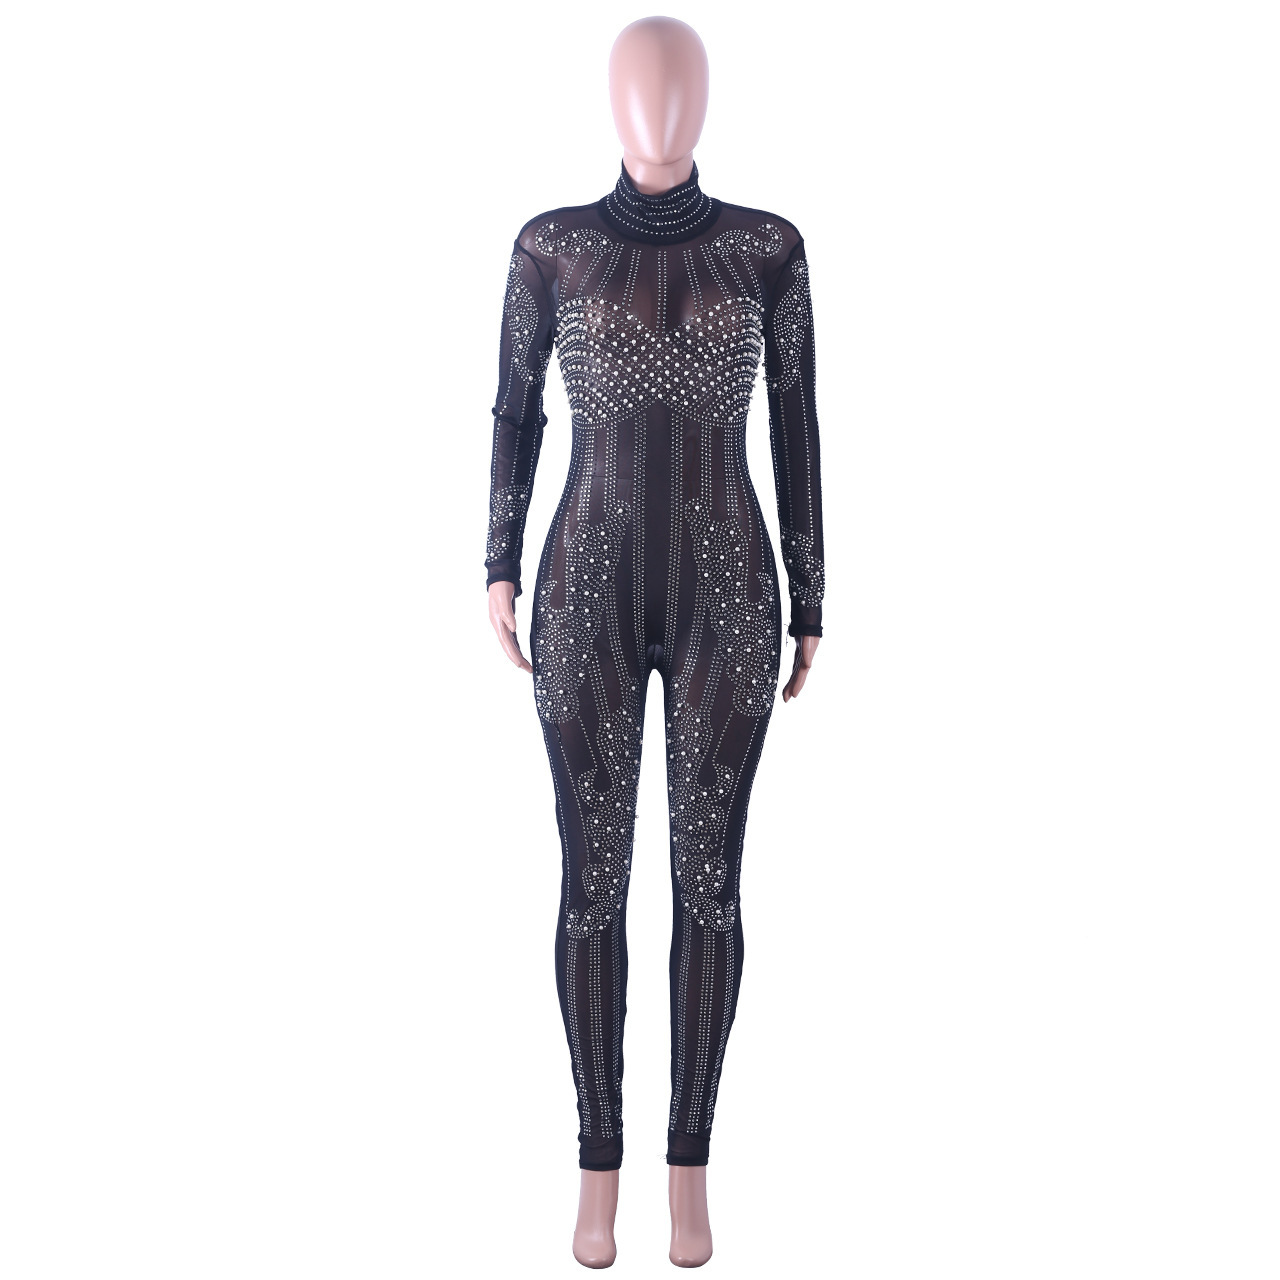 8f363b84e7c 2019 Joyfunear 2019 Stretchy High Neck Long Sleeve Skinny Jumpsuit ...